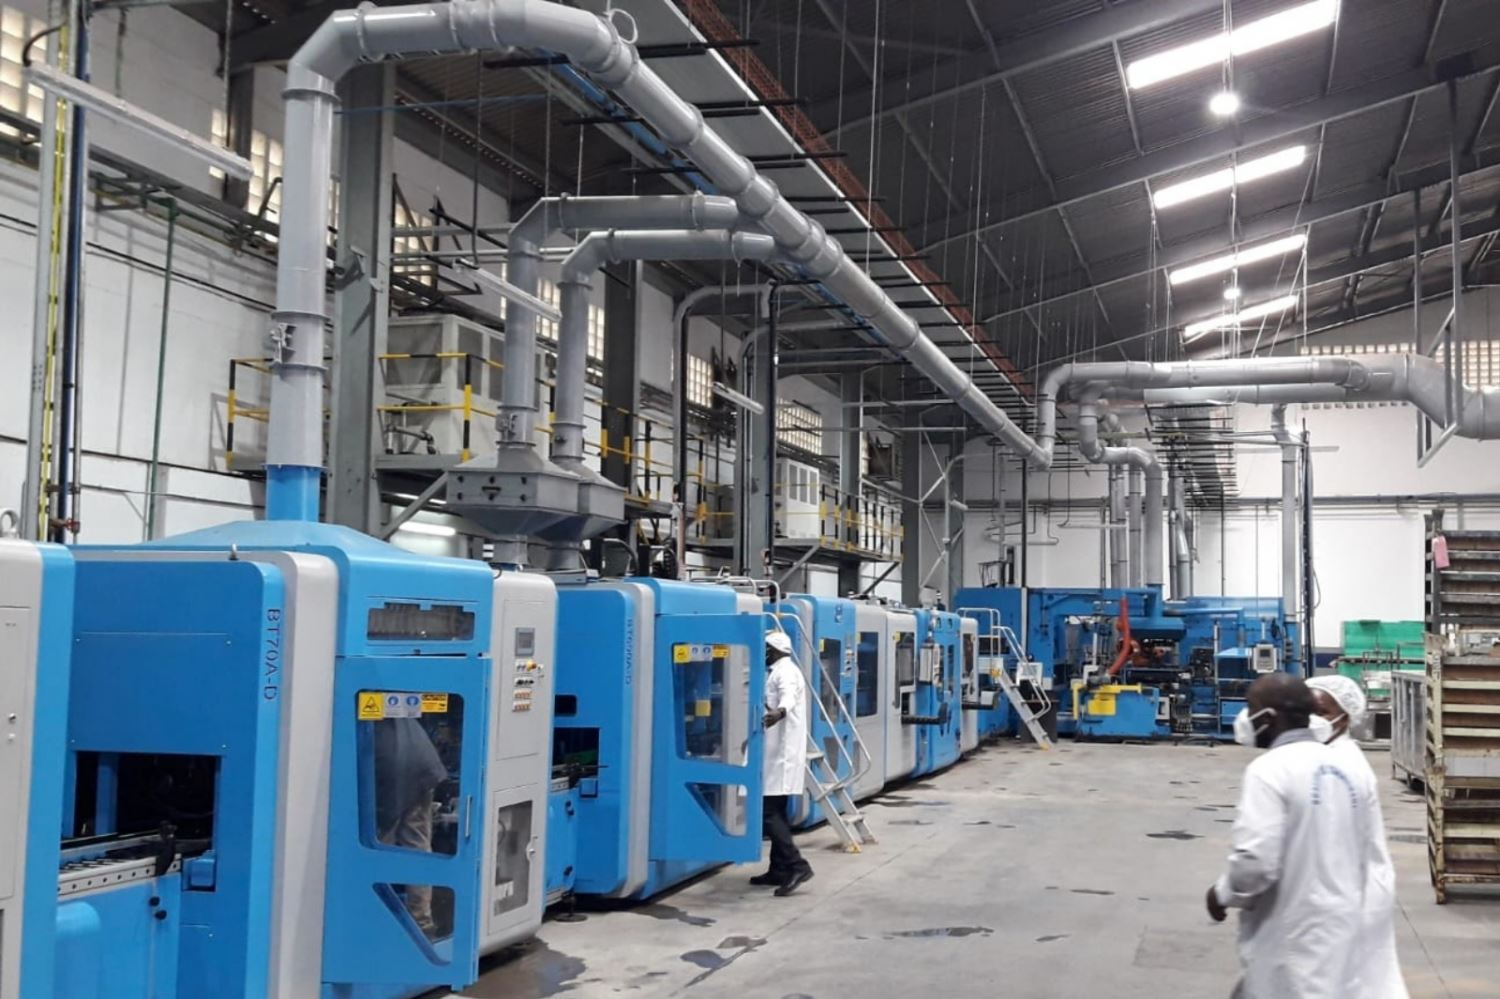 ALMABAT Bomaksan Industrial Air Filtration Systems